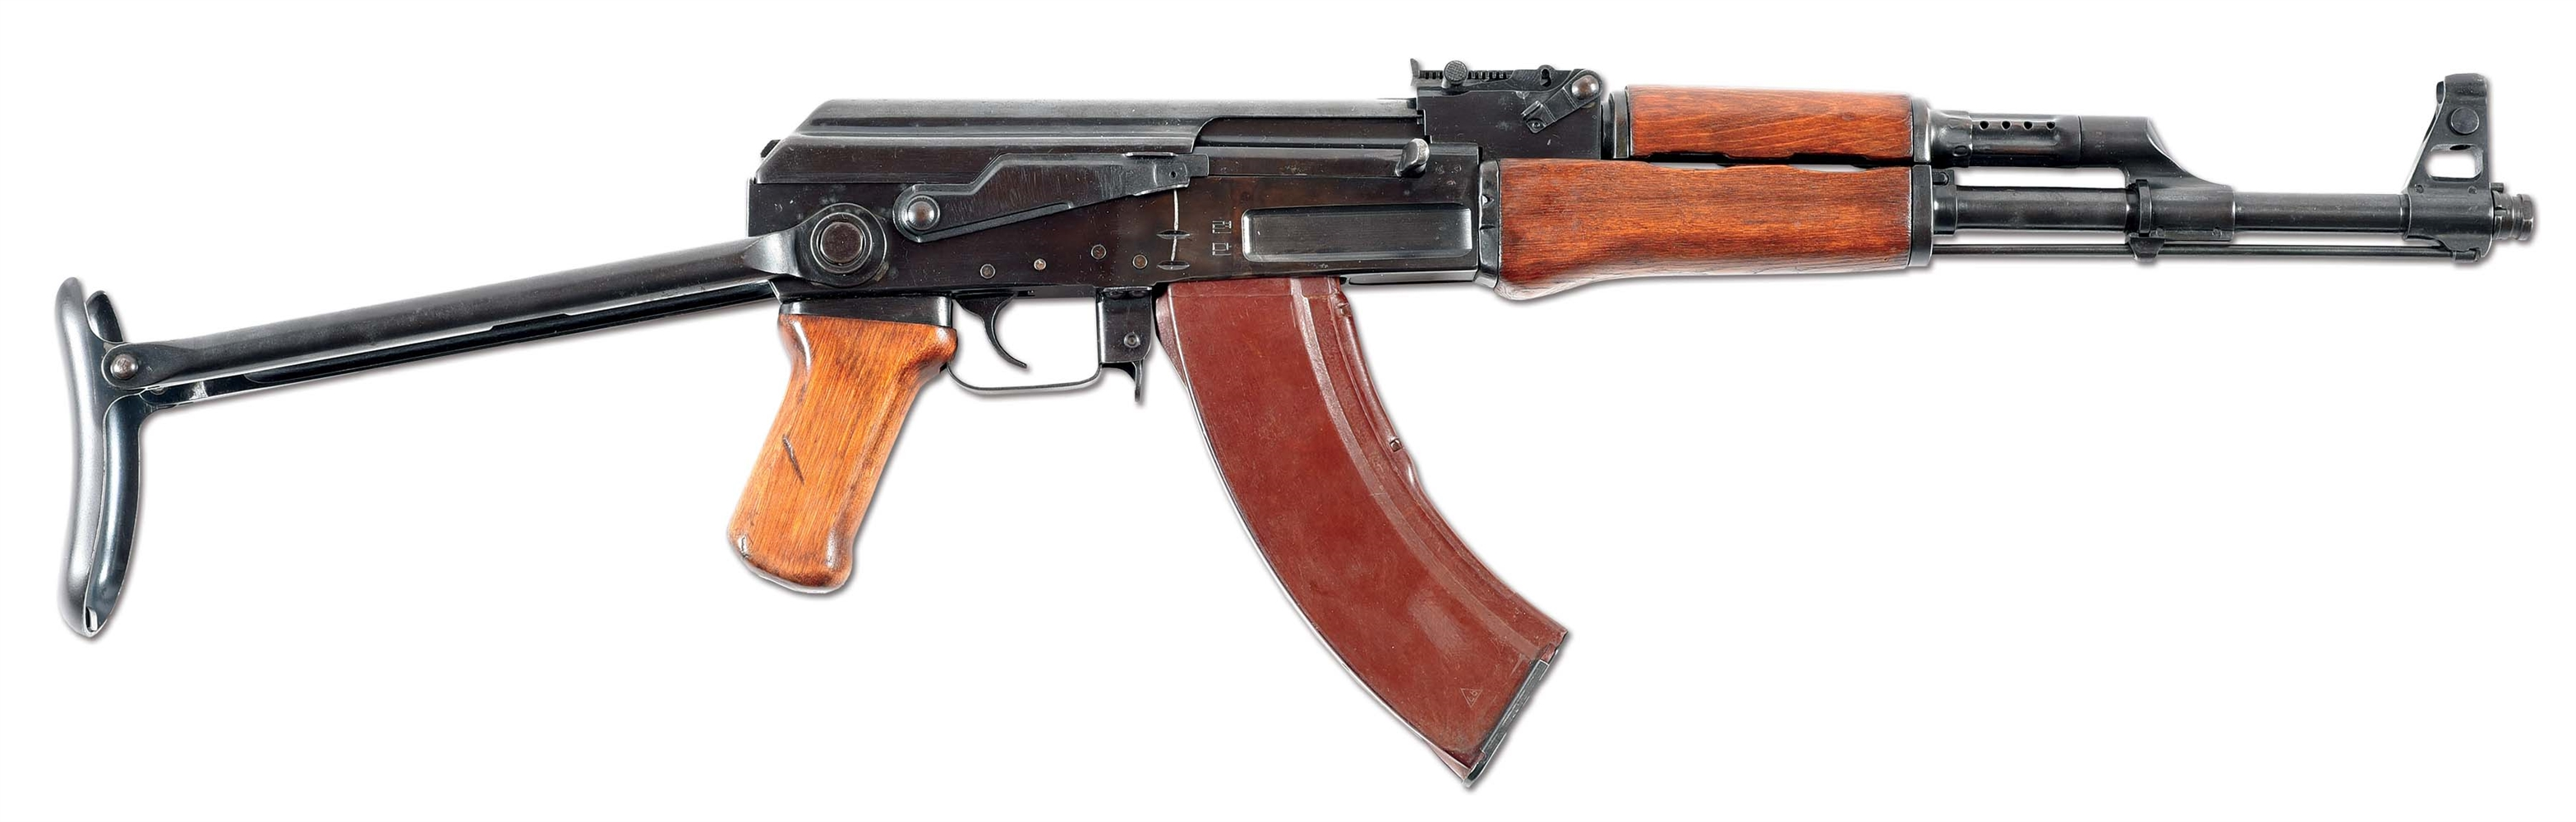 (N) BEAUTIFUL HIGH CONDITION NORTH KOREAN FOLDING STOCK TYPE 58 (AK-47) MACHINE GUN (FULLY TRANSFERABLE).